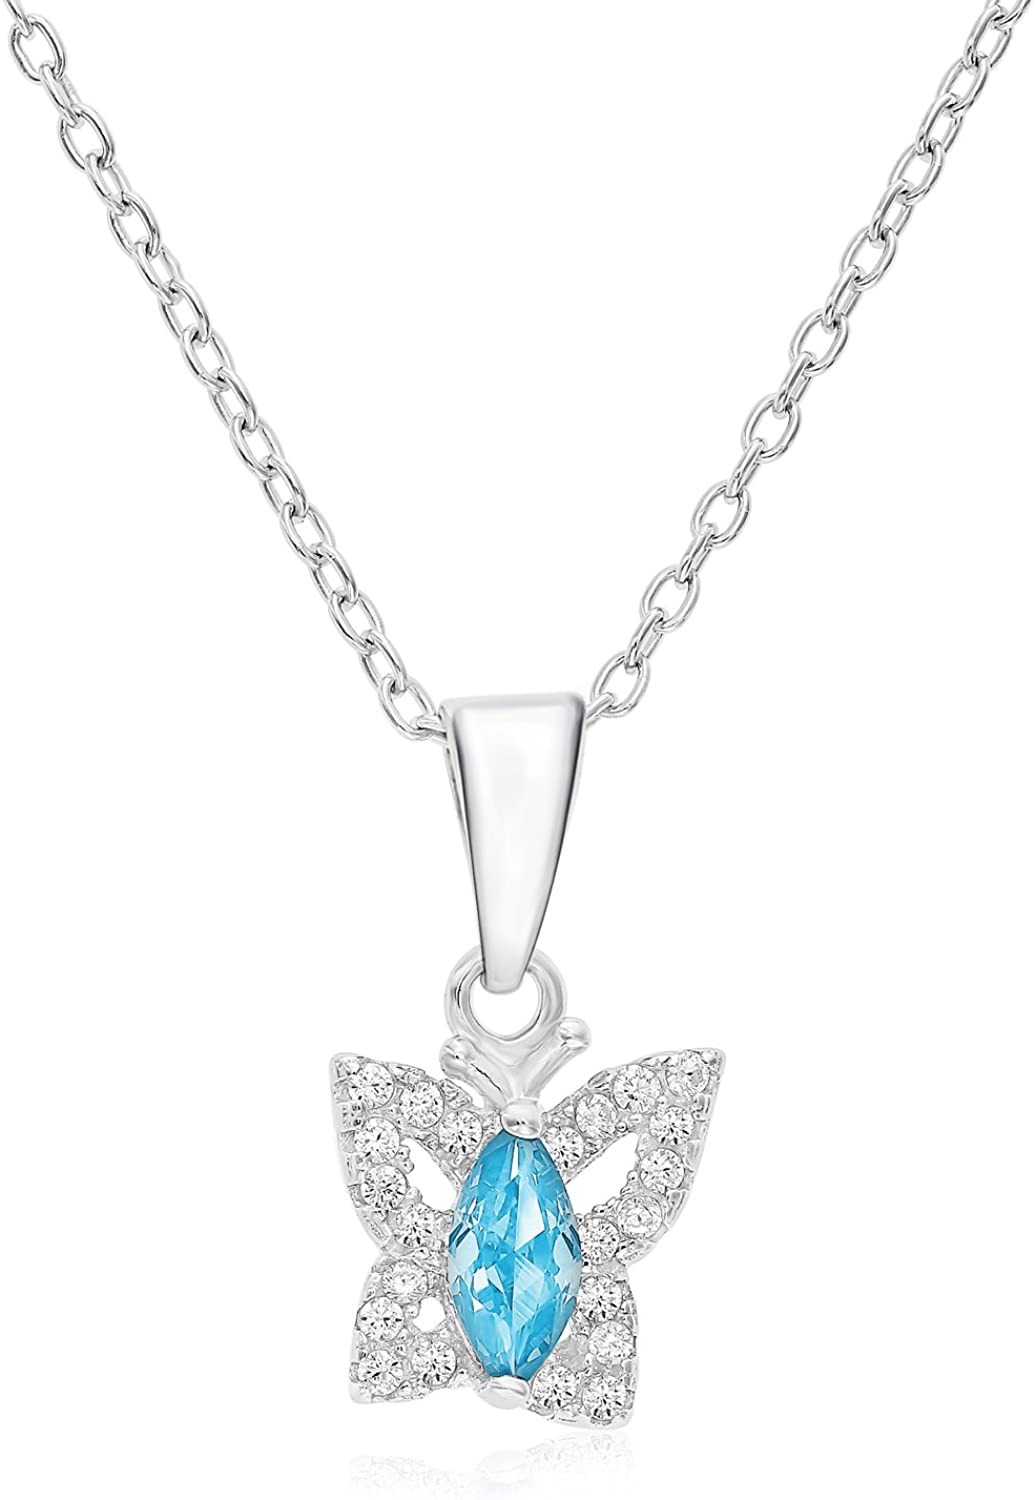 Halo Butterfly Pendant in Sterling Silver with Simulated Aquamarine March CZ Birthstone with 16 Chain